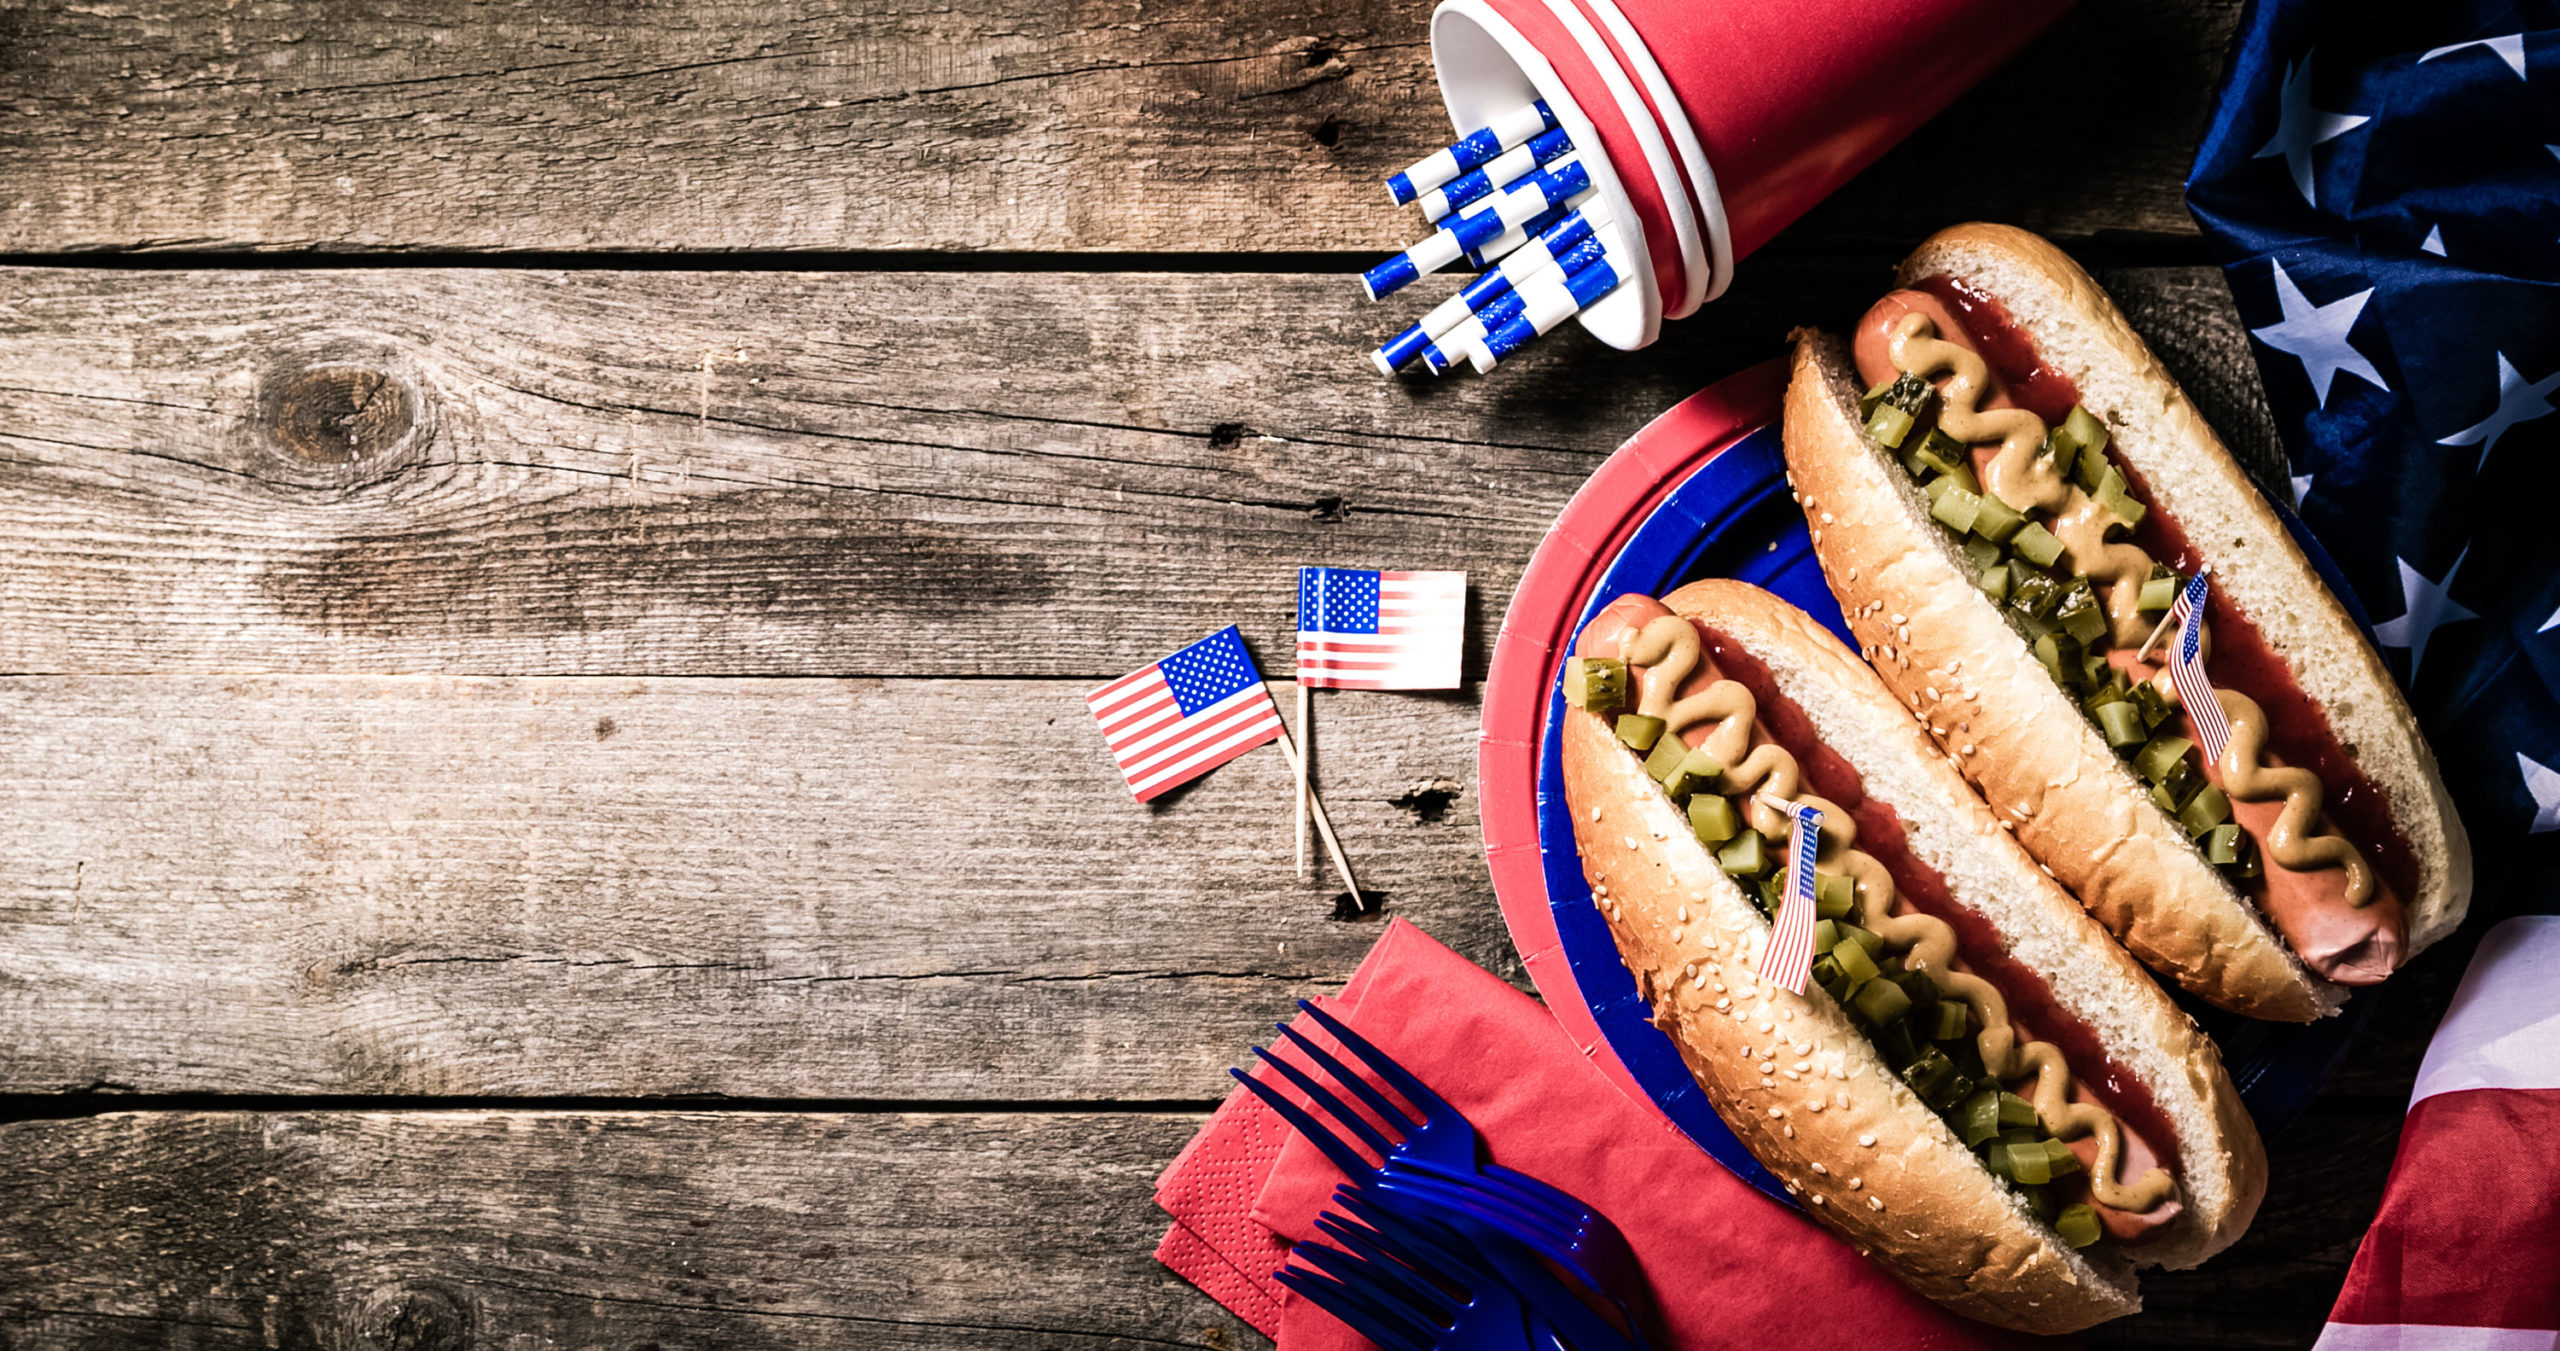 Labor Day : hot dogs, barbecue